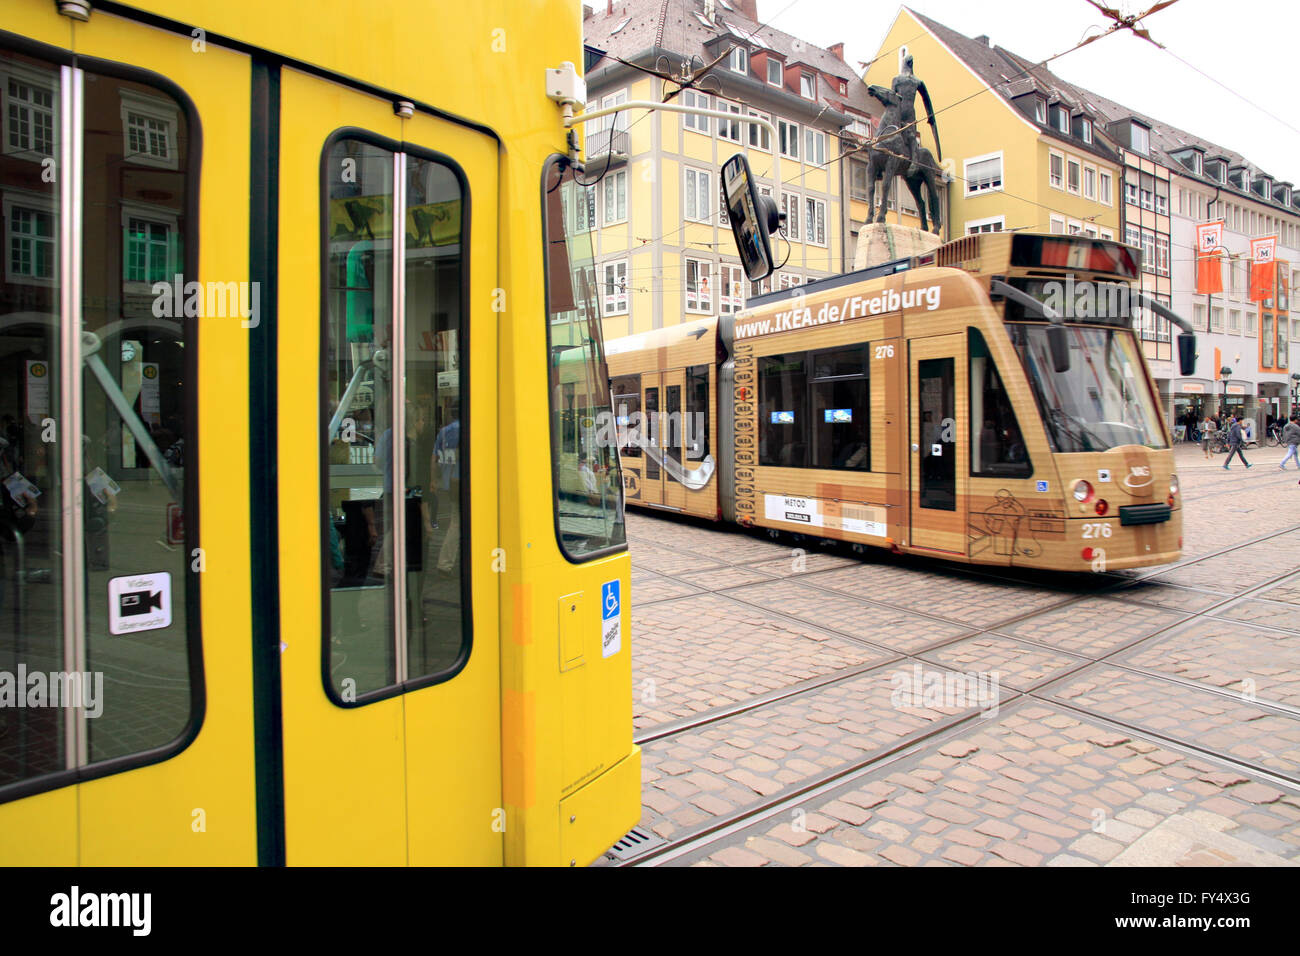 Trams in the German town of Freiburg im Breisgau in the black Forest - Stock Image